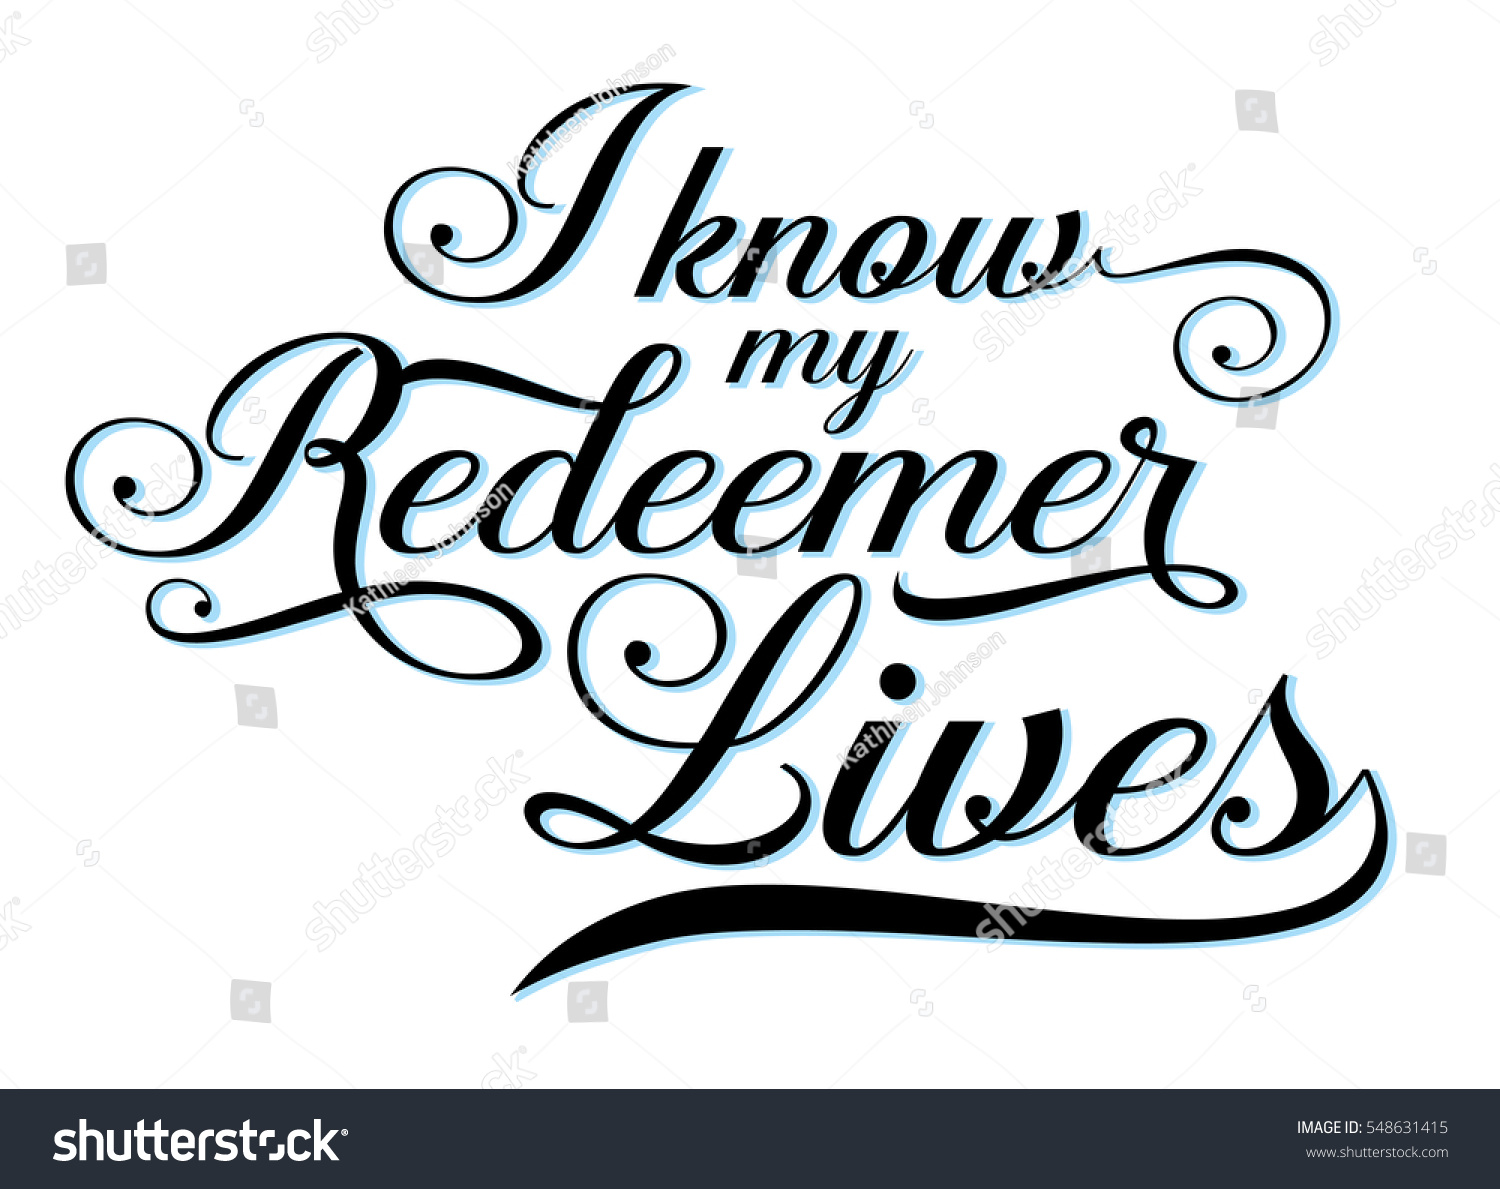 Know my redeemer lives calligraphy vector stock